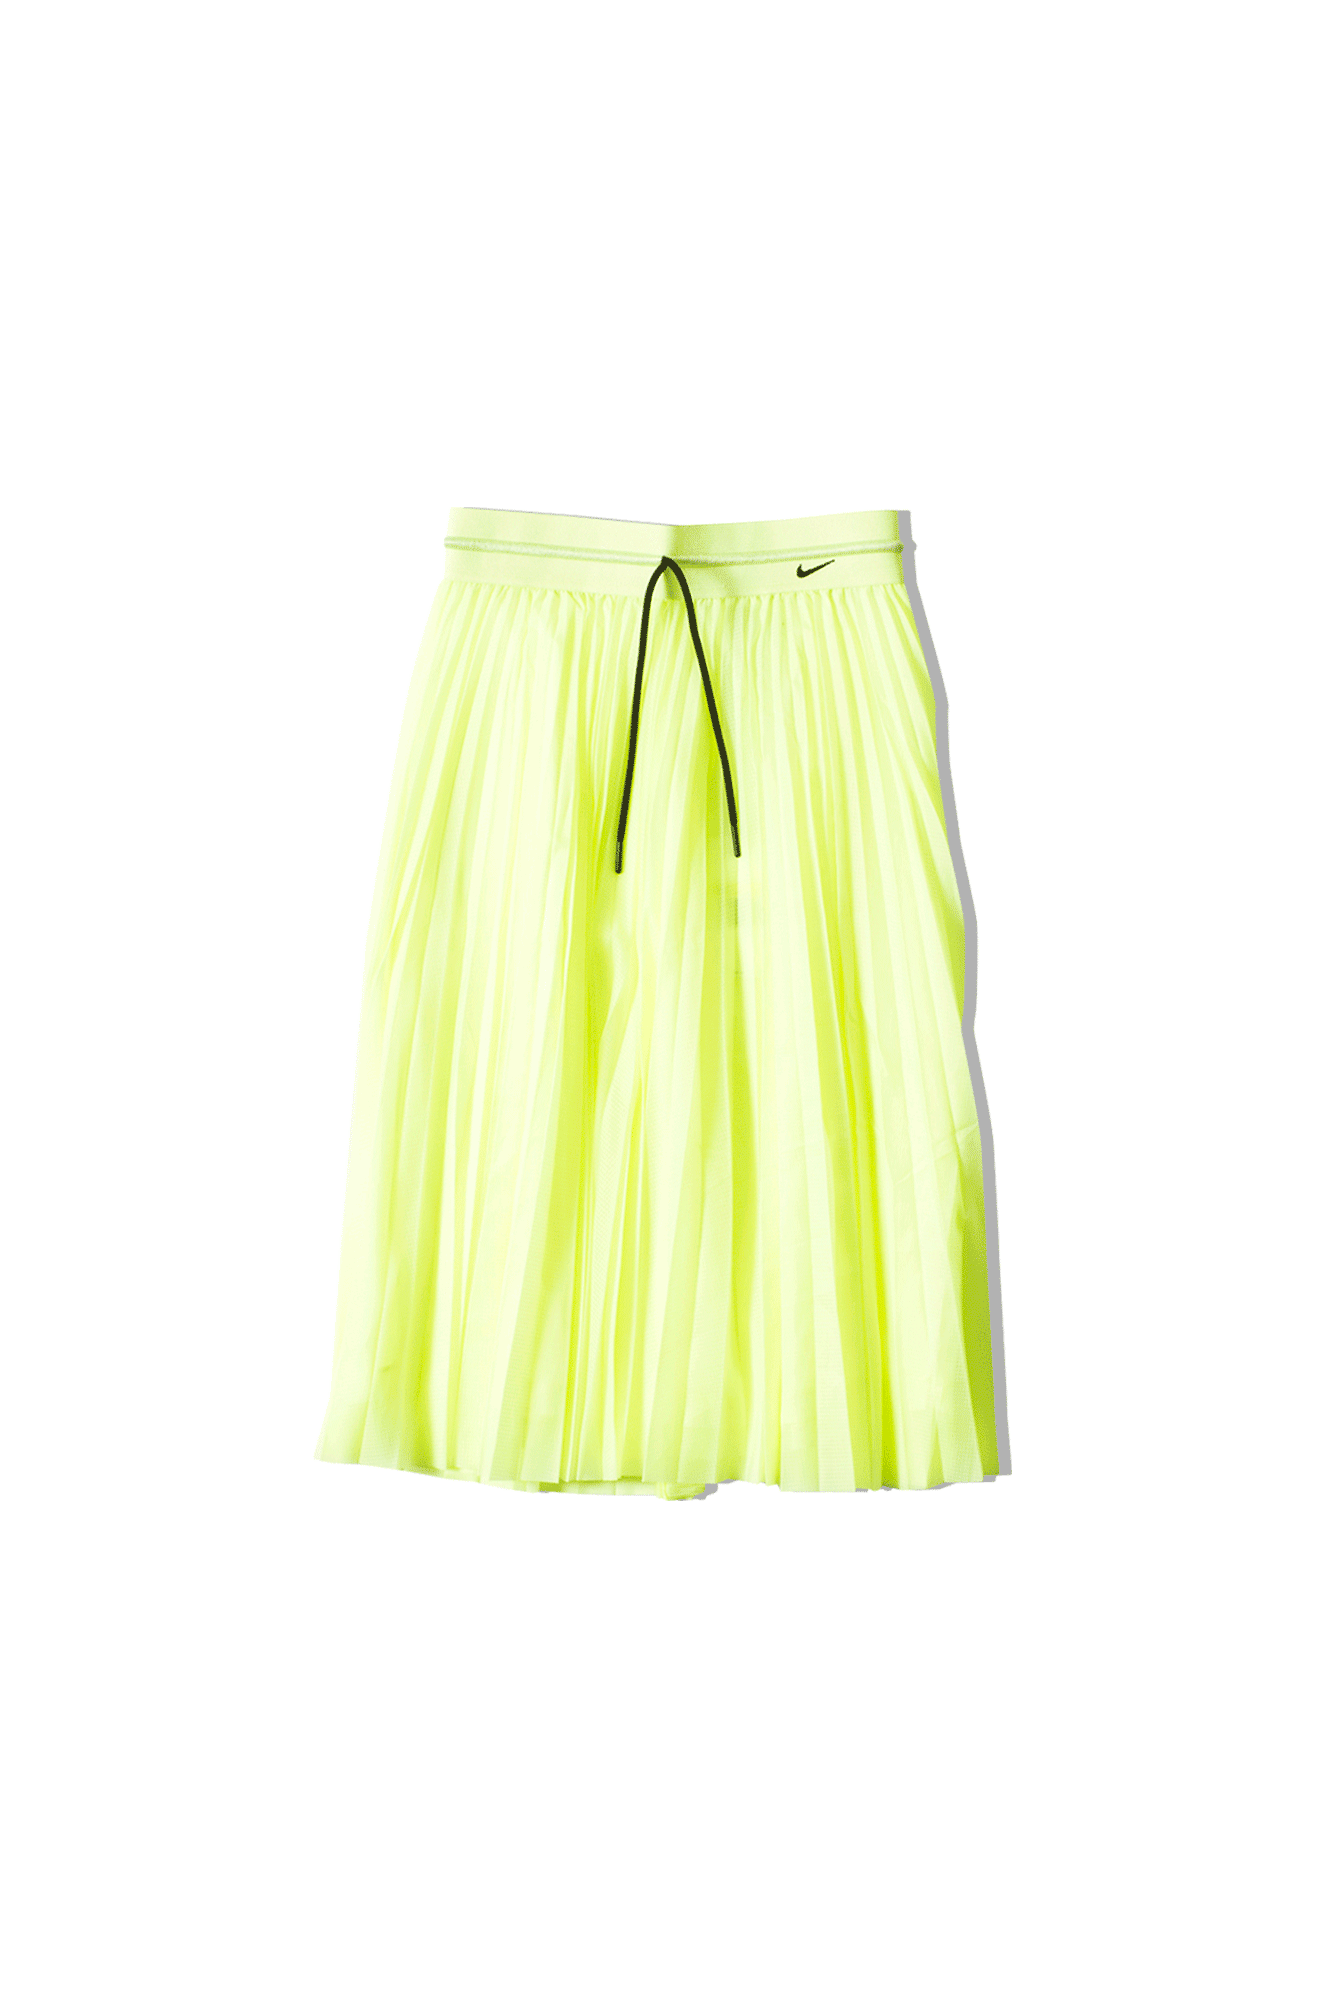 Nike Skirts W Nrg Skirt Yellow AV8286-716#000#YELLOW#XS - One Block Down